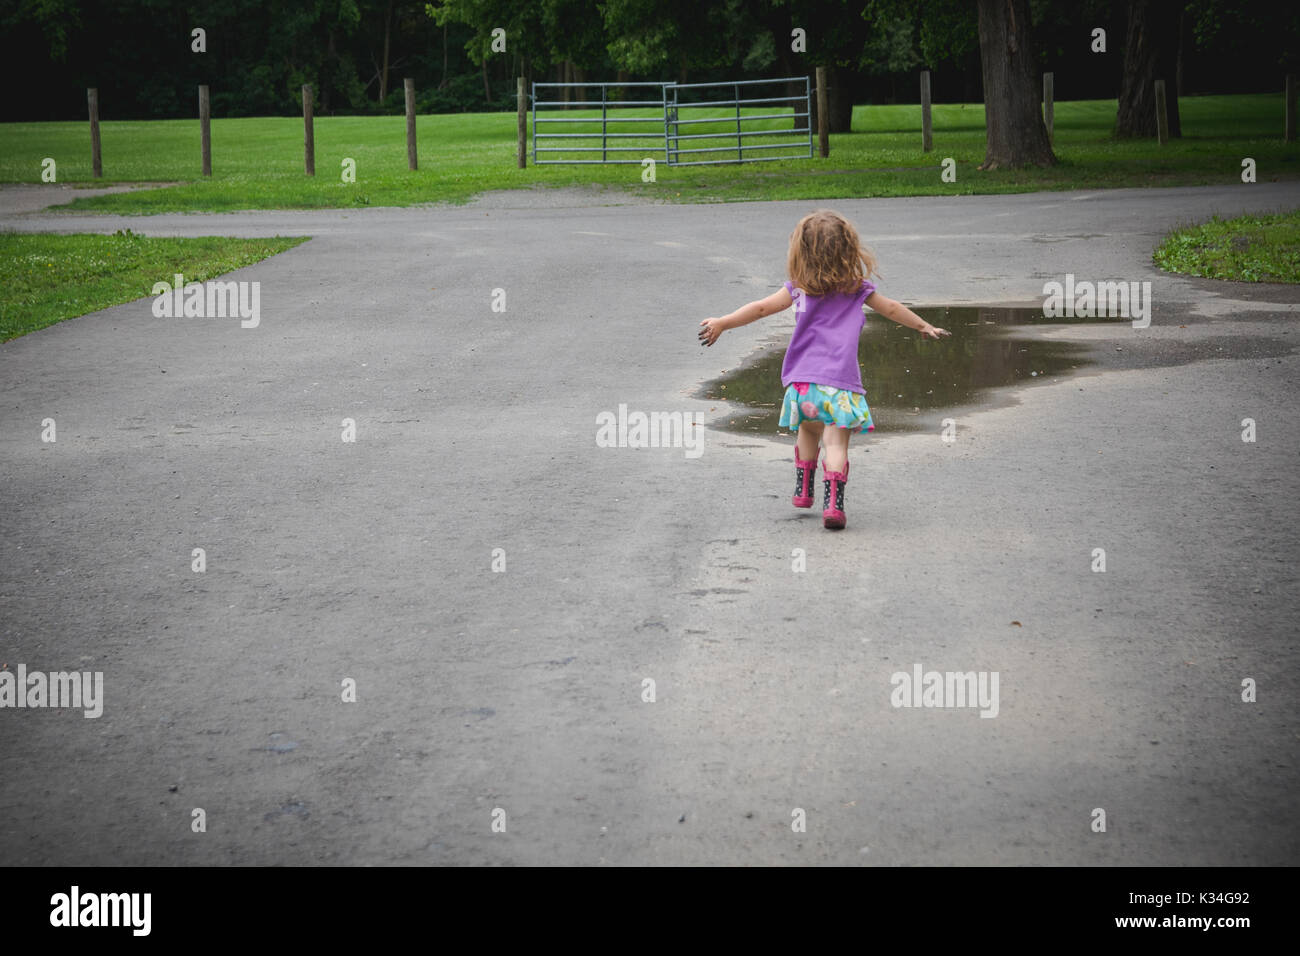 A toddler girl runs toward a mud puddle in a park. - Stock Image